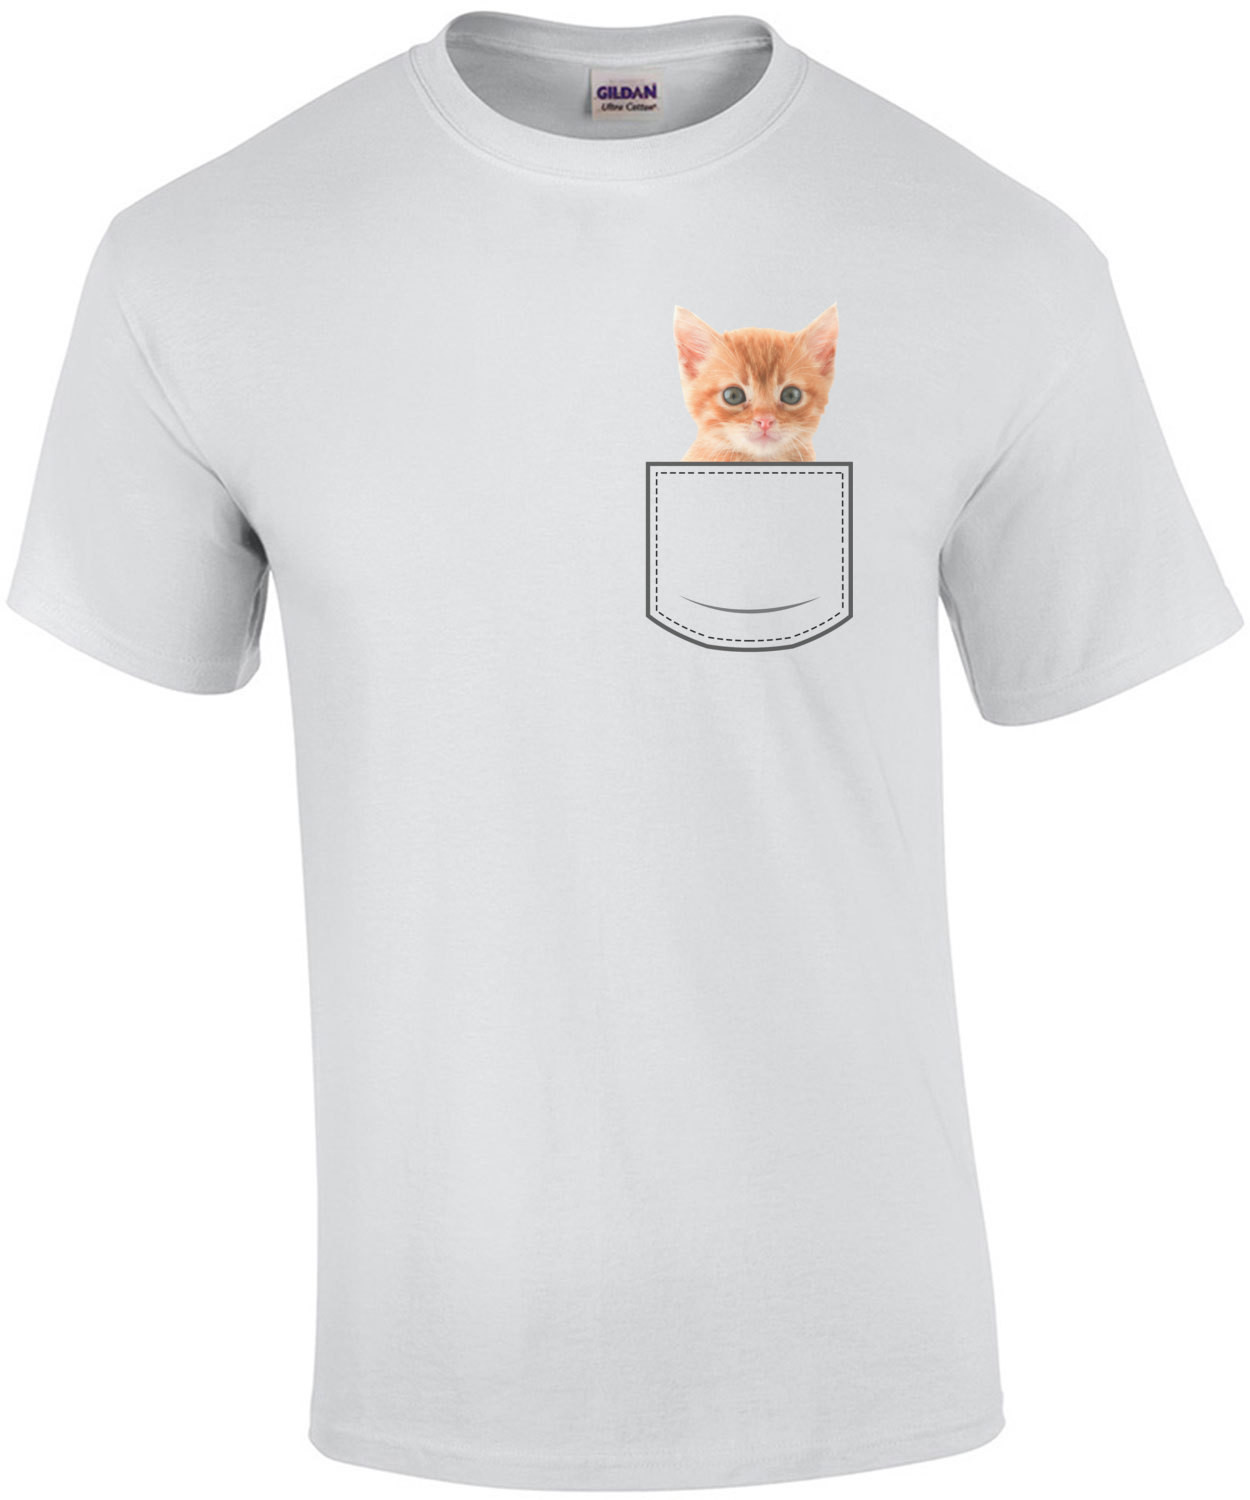 Cat in pocket - pocket pet t-shirt